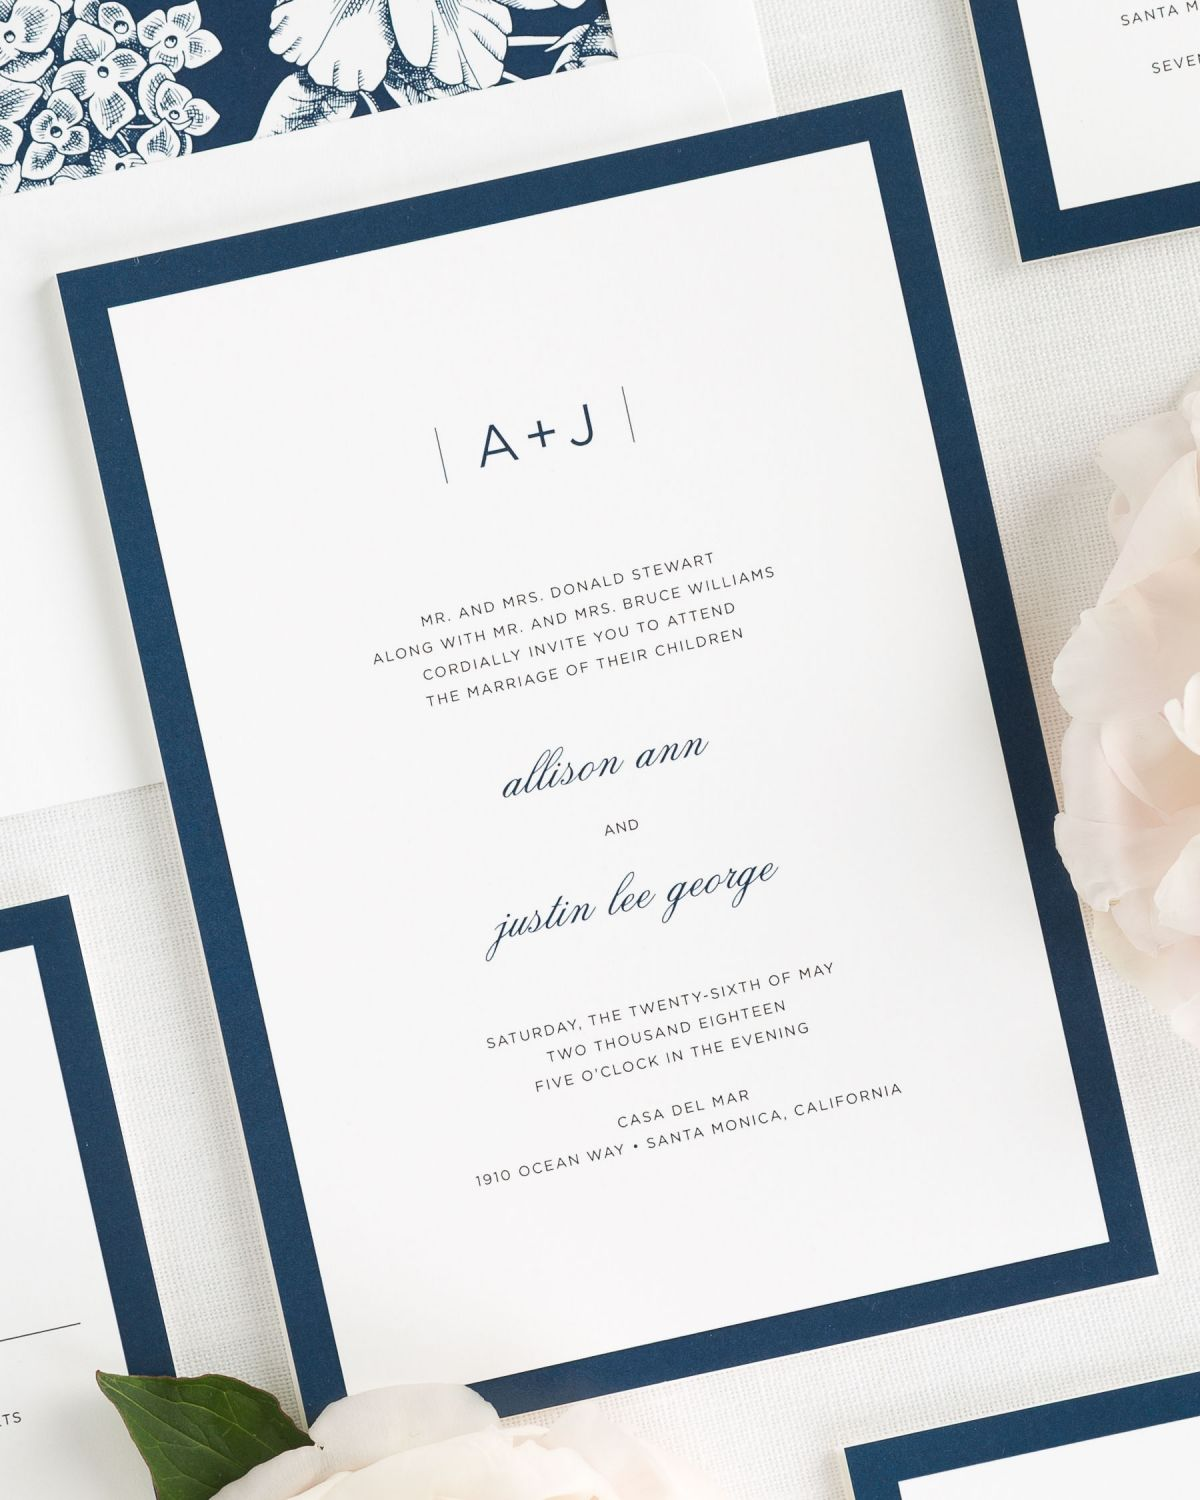 Sophisticated Modern Wedding Invitations - Wedding Invitations by Shine